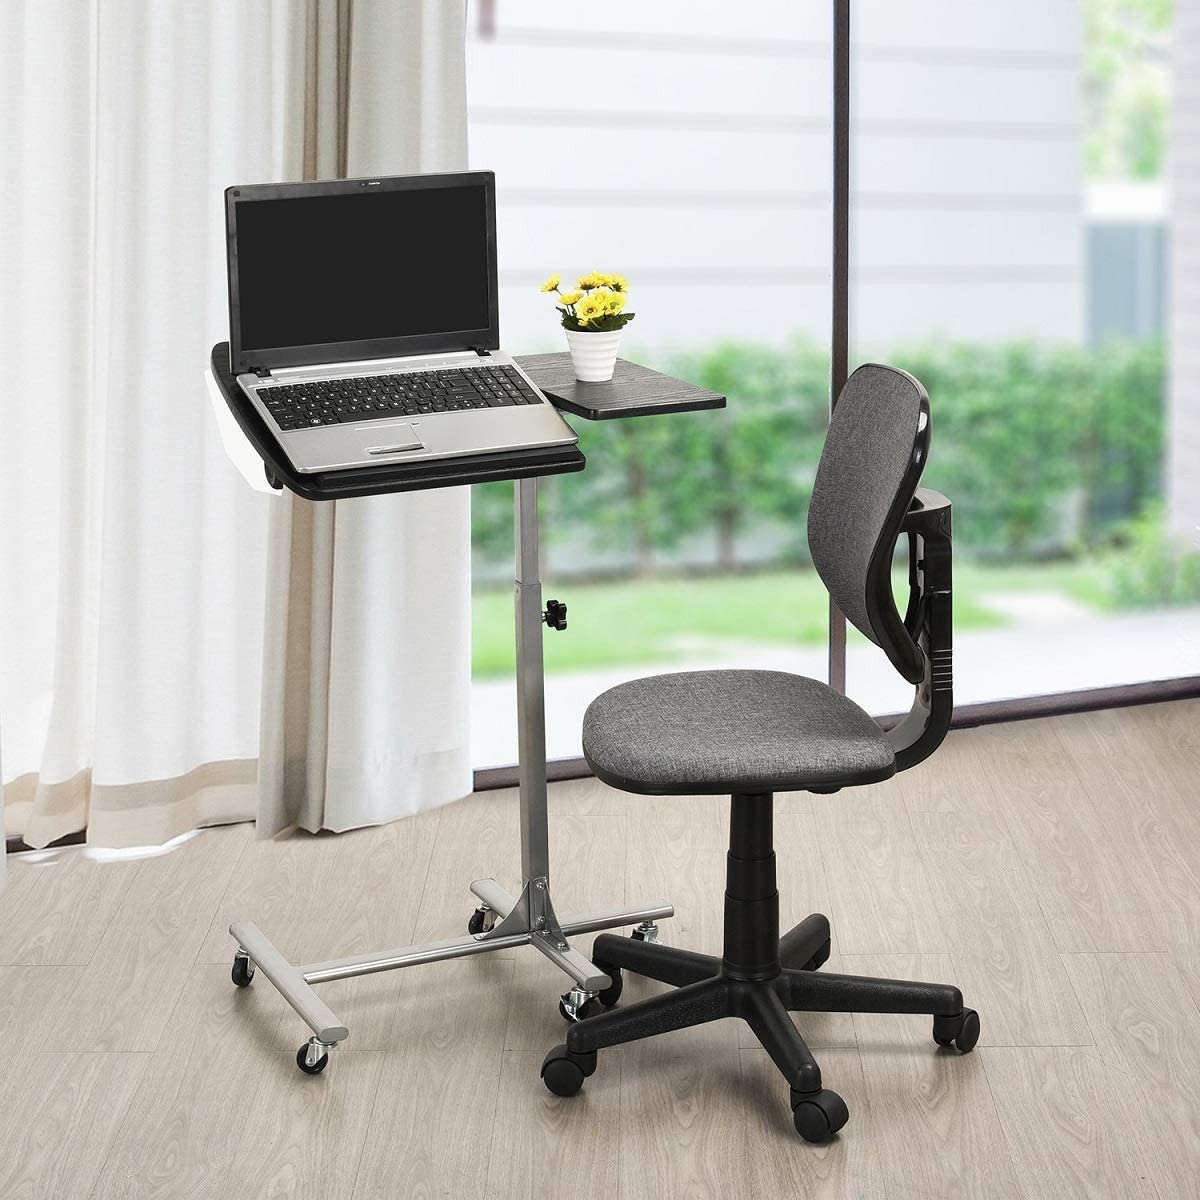 Natwind Lifting Laptop Desk Adjustable Angle & Height Portable Rolling Table Desk with Lockable Universal Wheels Laptop Notebook Stand Tiltable Tabletop Cart Removable Home Office Desk Black : Office Products